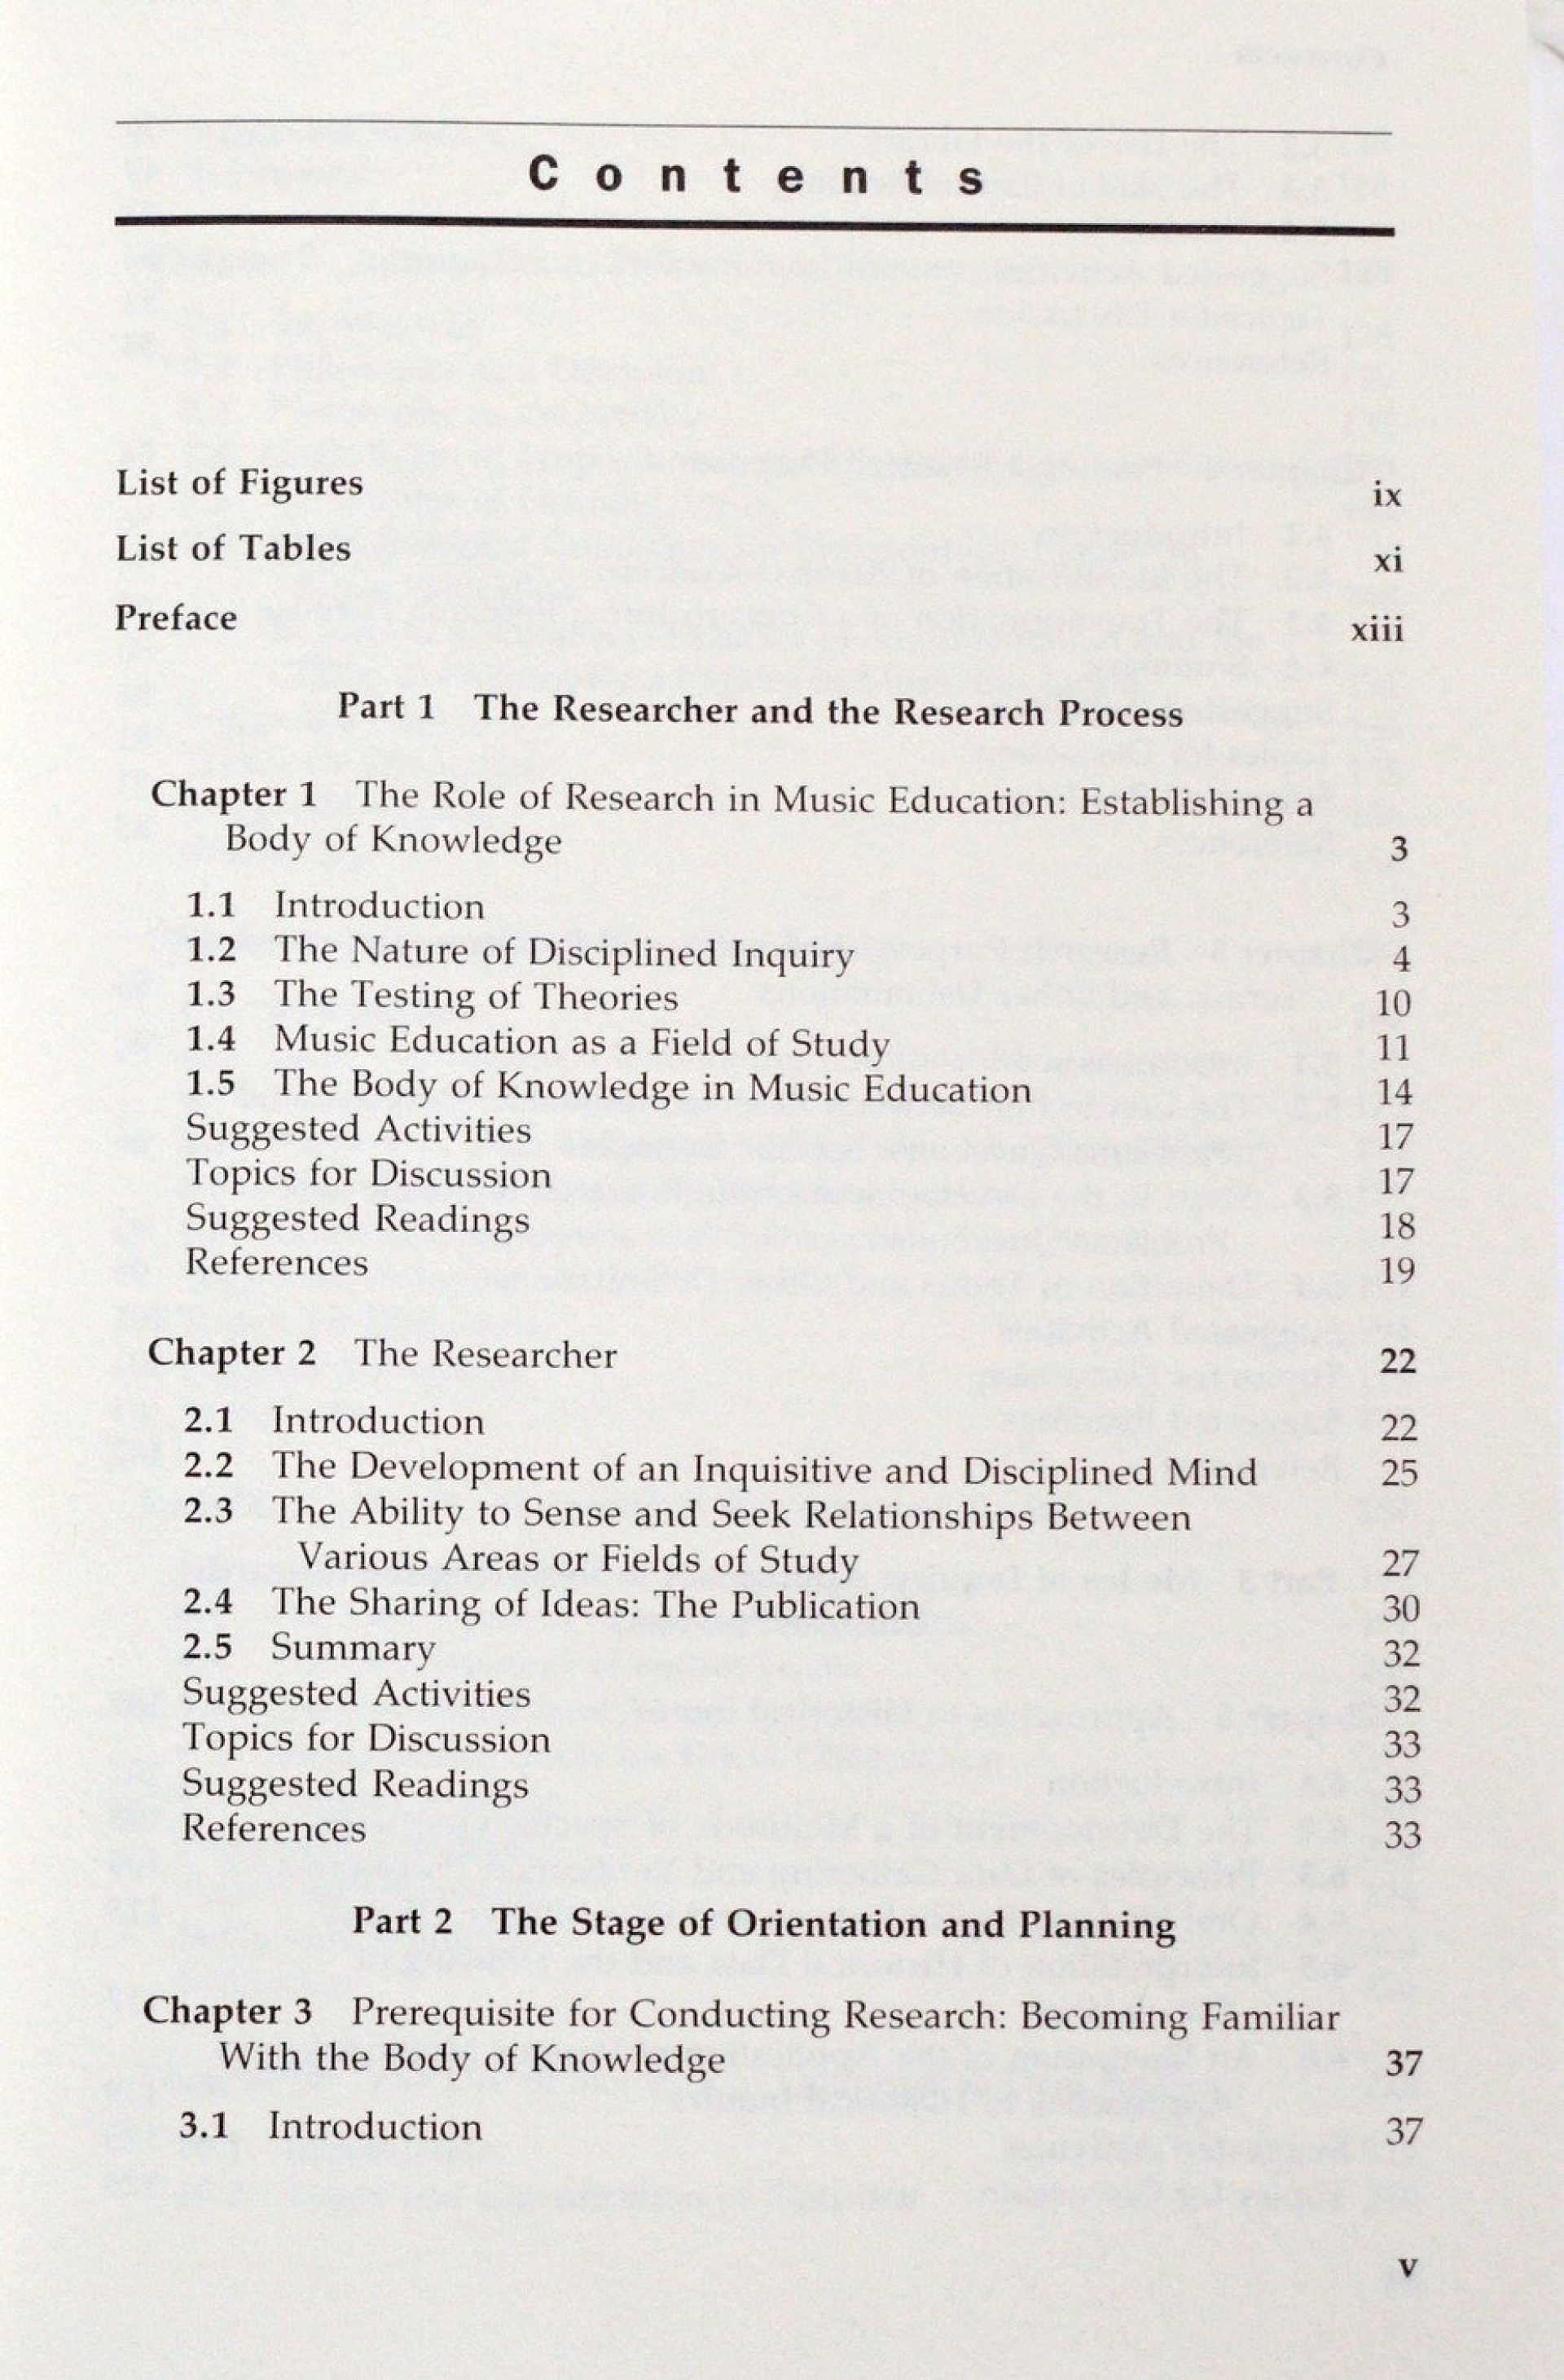 007 Research Paper 71m W90ewl Parts Of Chapter Beautiful 1 3 1-3 2 1920